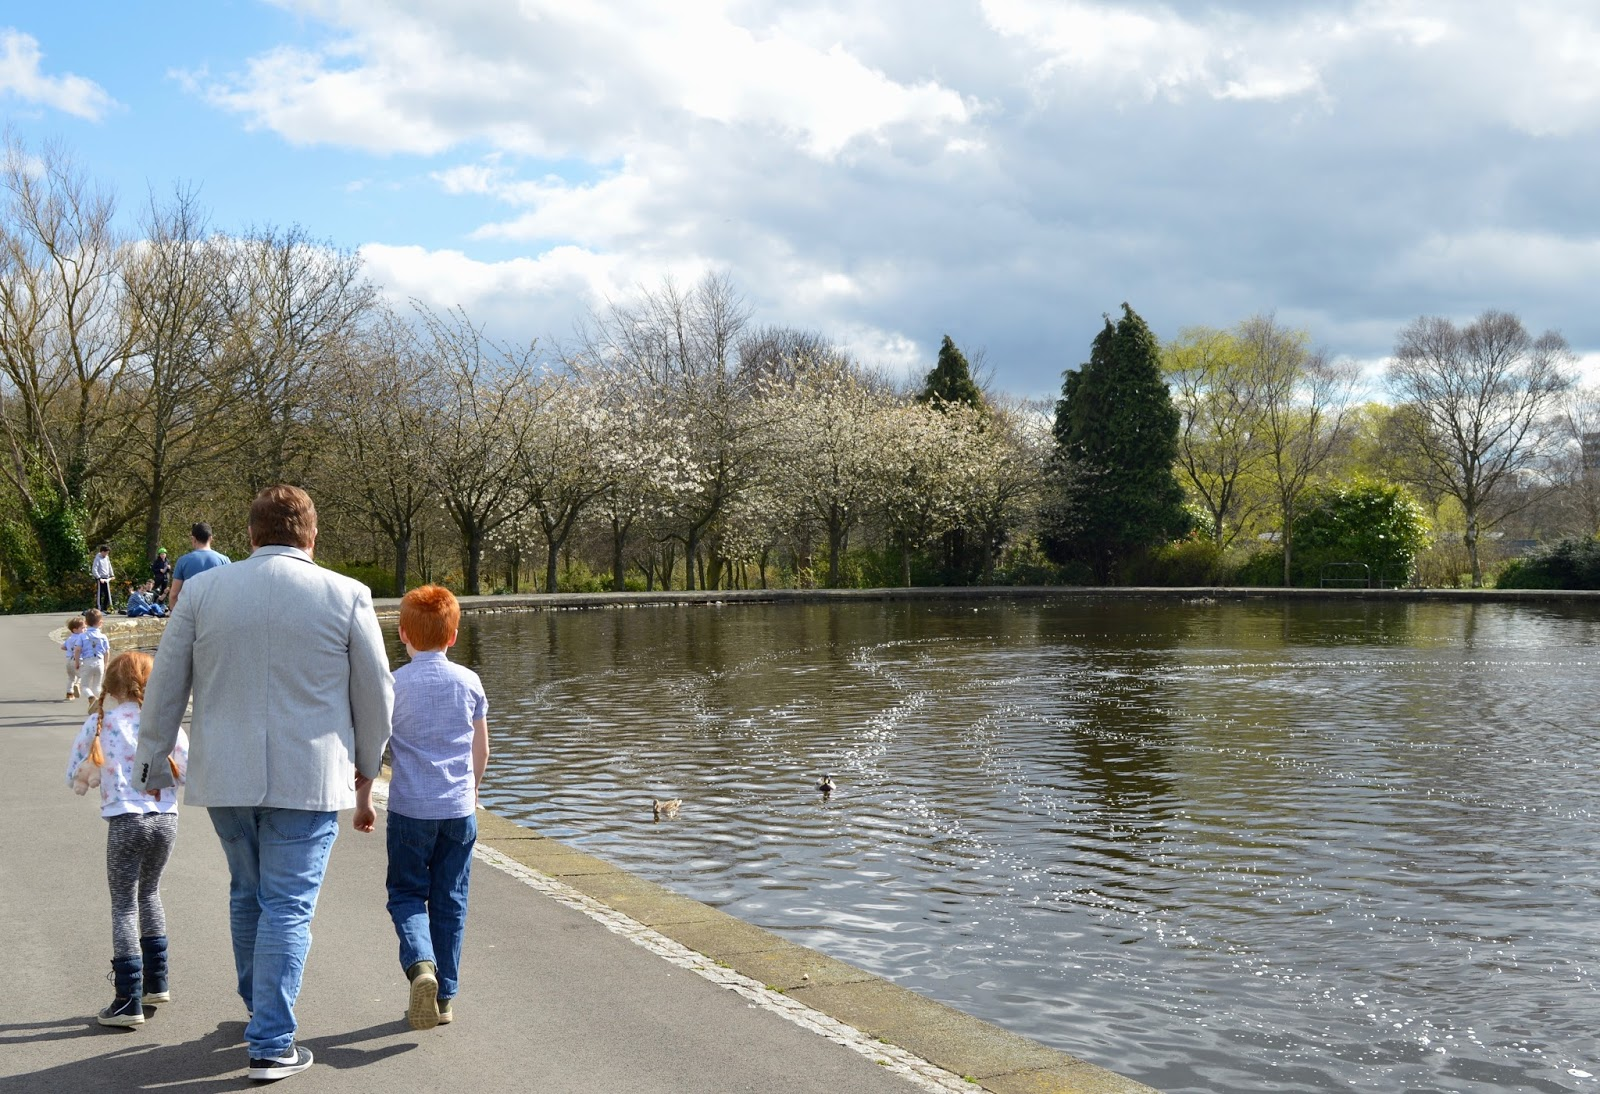 Exhibition Park Newcastle | Wylam Brewery Sunday Lunch - lake walk